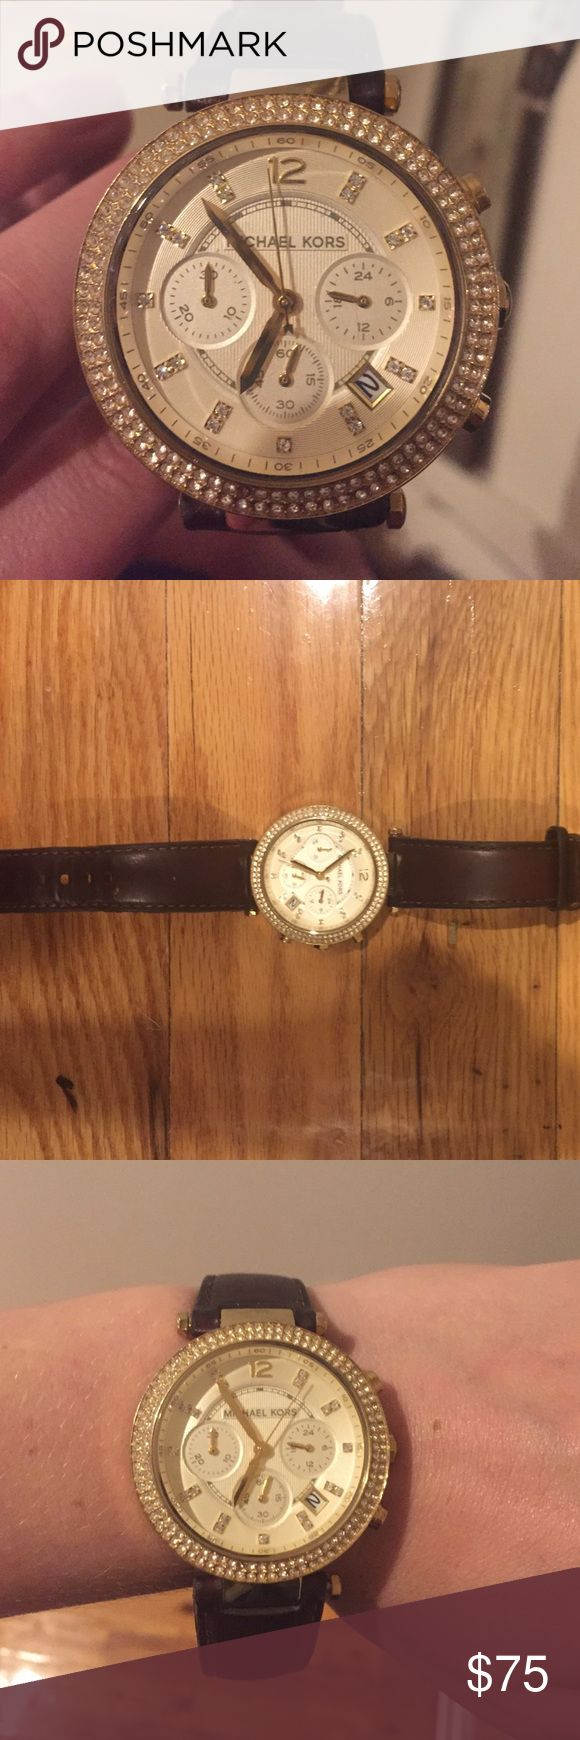 Michael Kors leather band watch Michael Kors leather band watch with gold and diamond accents throughout the watch. One slight issue is one of the round ends on one band has fallen off. Easily replaceable though! Michael Kors Accessories Watches